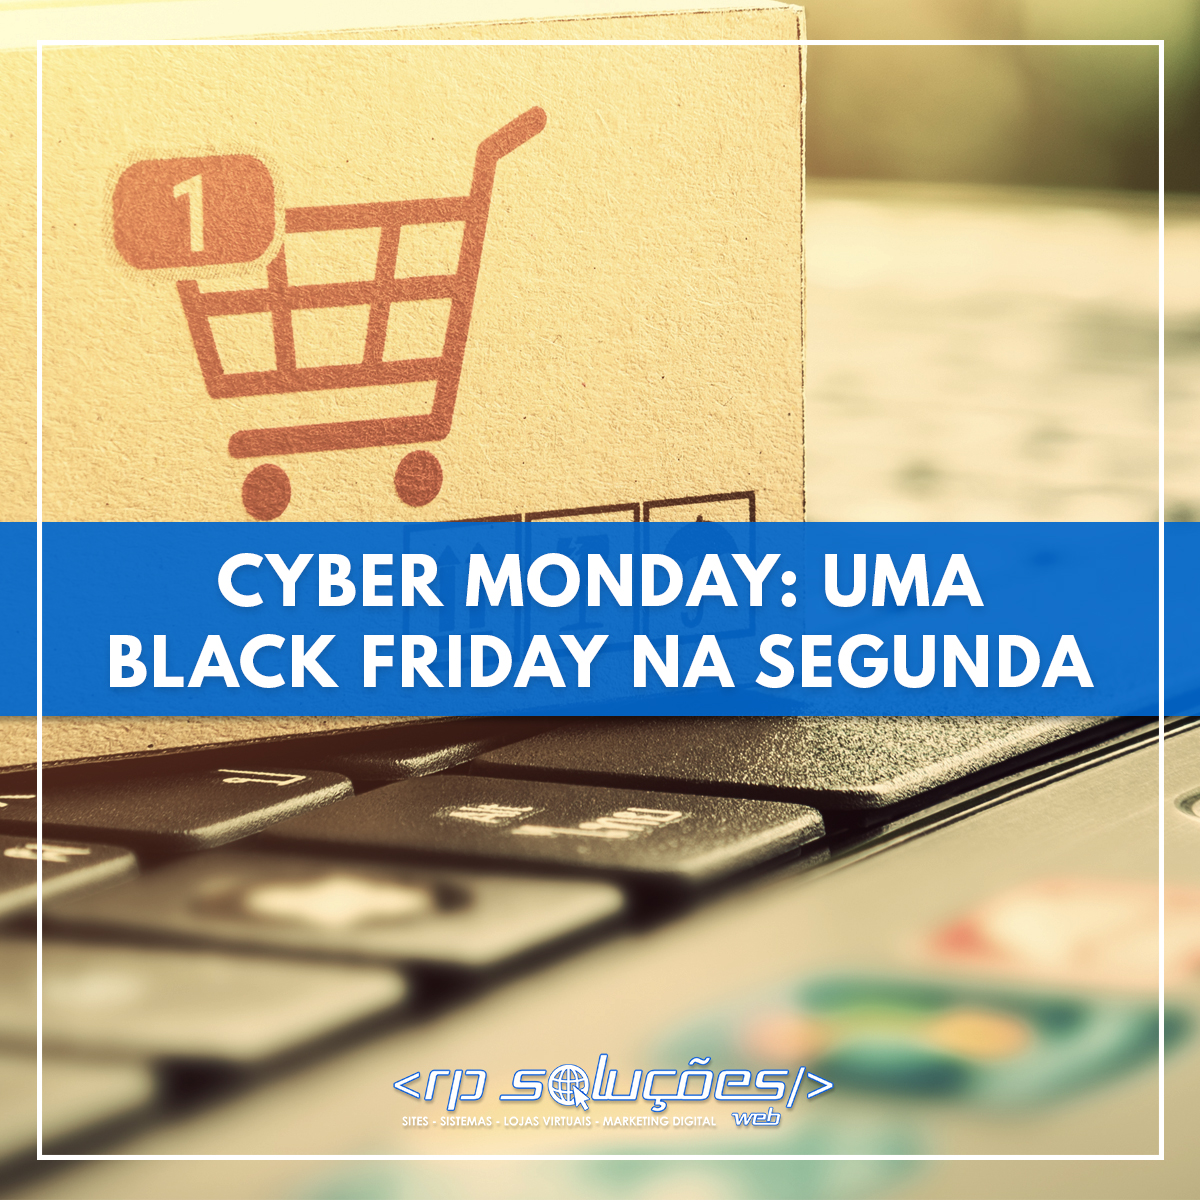 CYBER MONDAY: UMA BLACK FRIDAY NA SEGUNDA